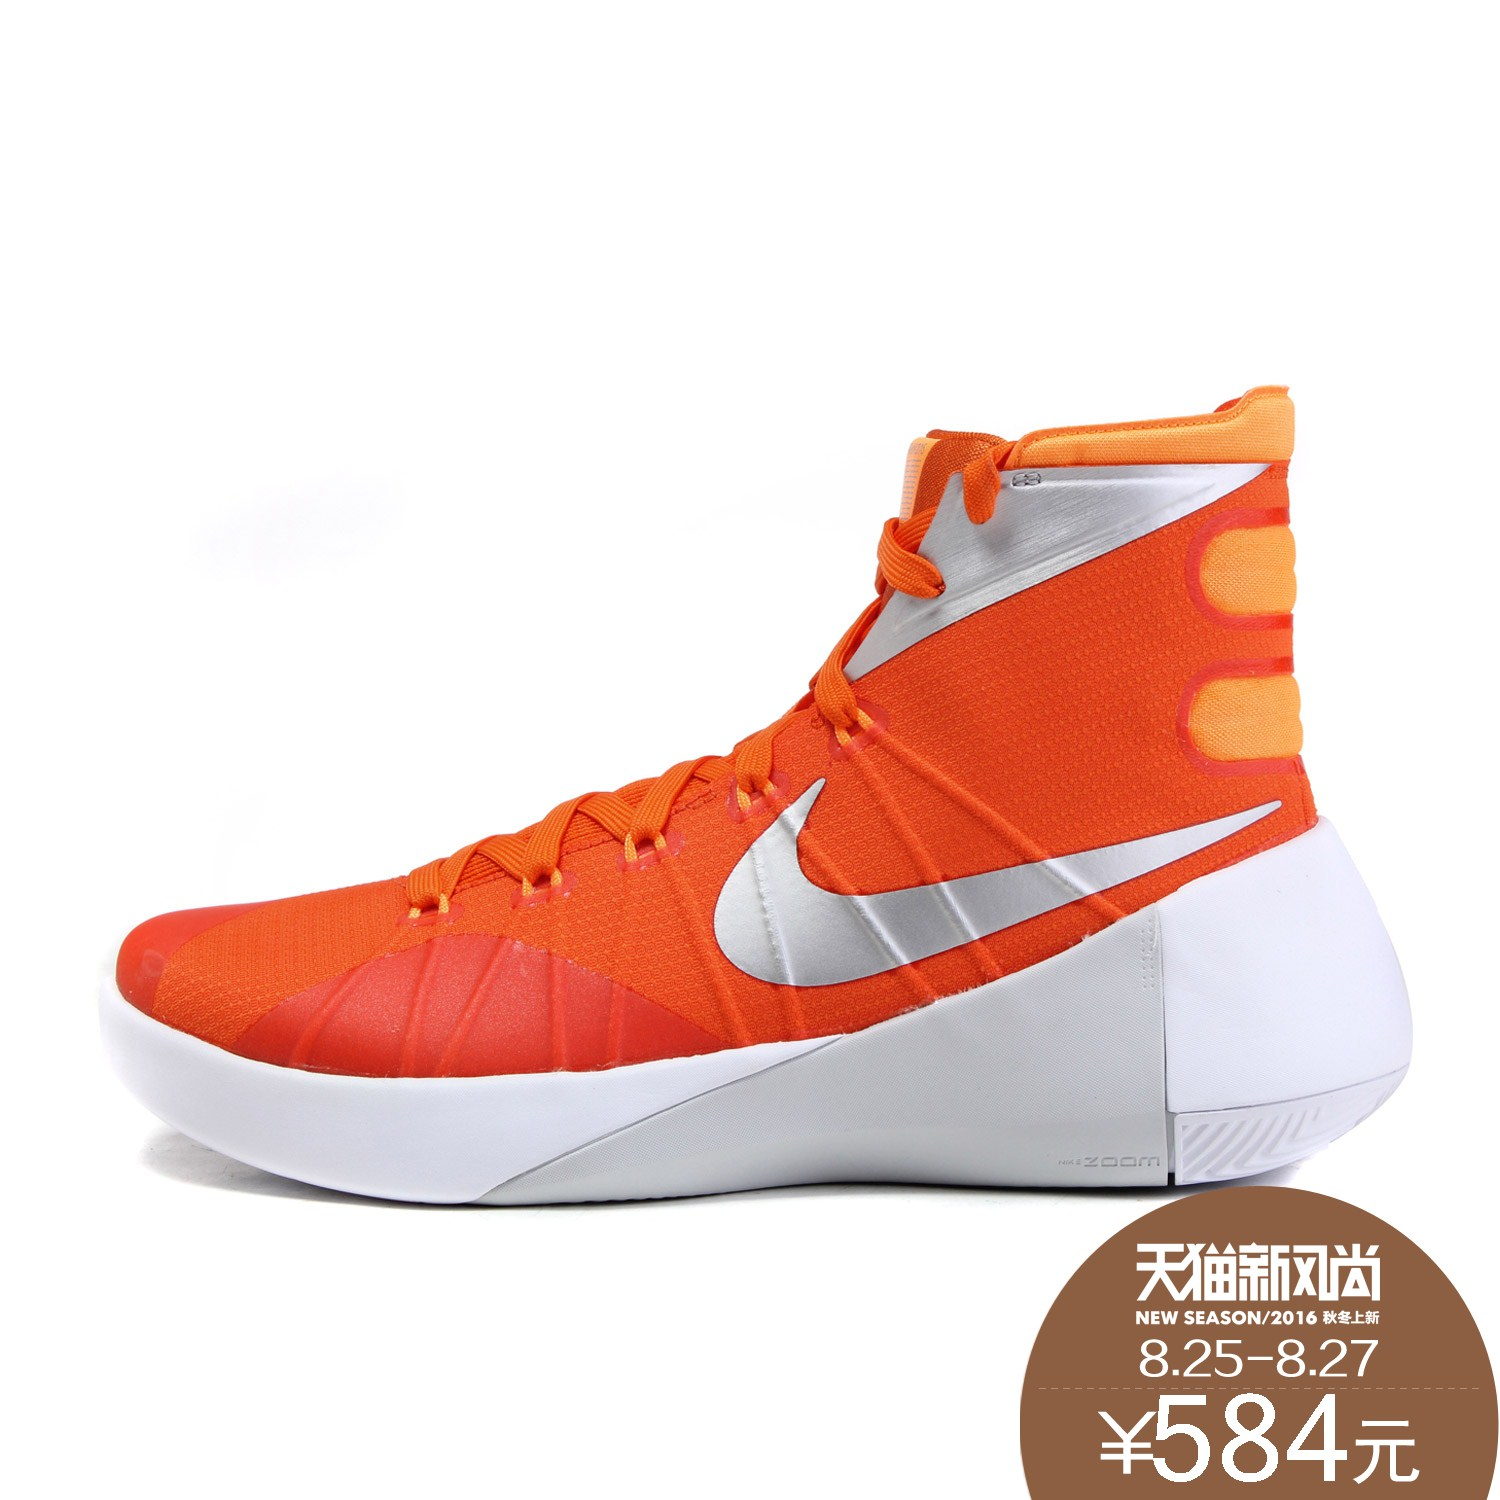 size 40 0be49 e53a6 Get Quotations · Nike nike men s basketball shoes high top sneakers shoes  749646-808 hyperdunk